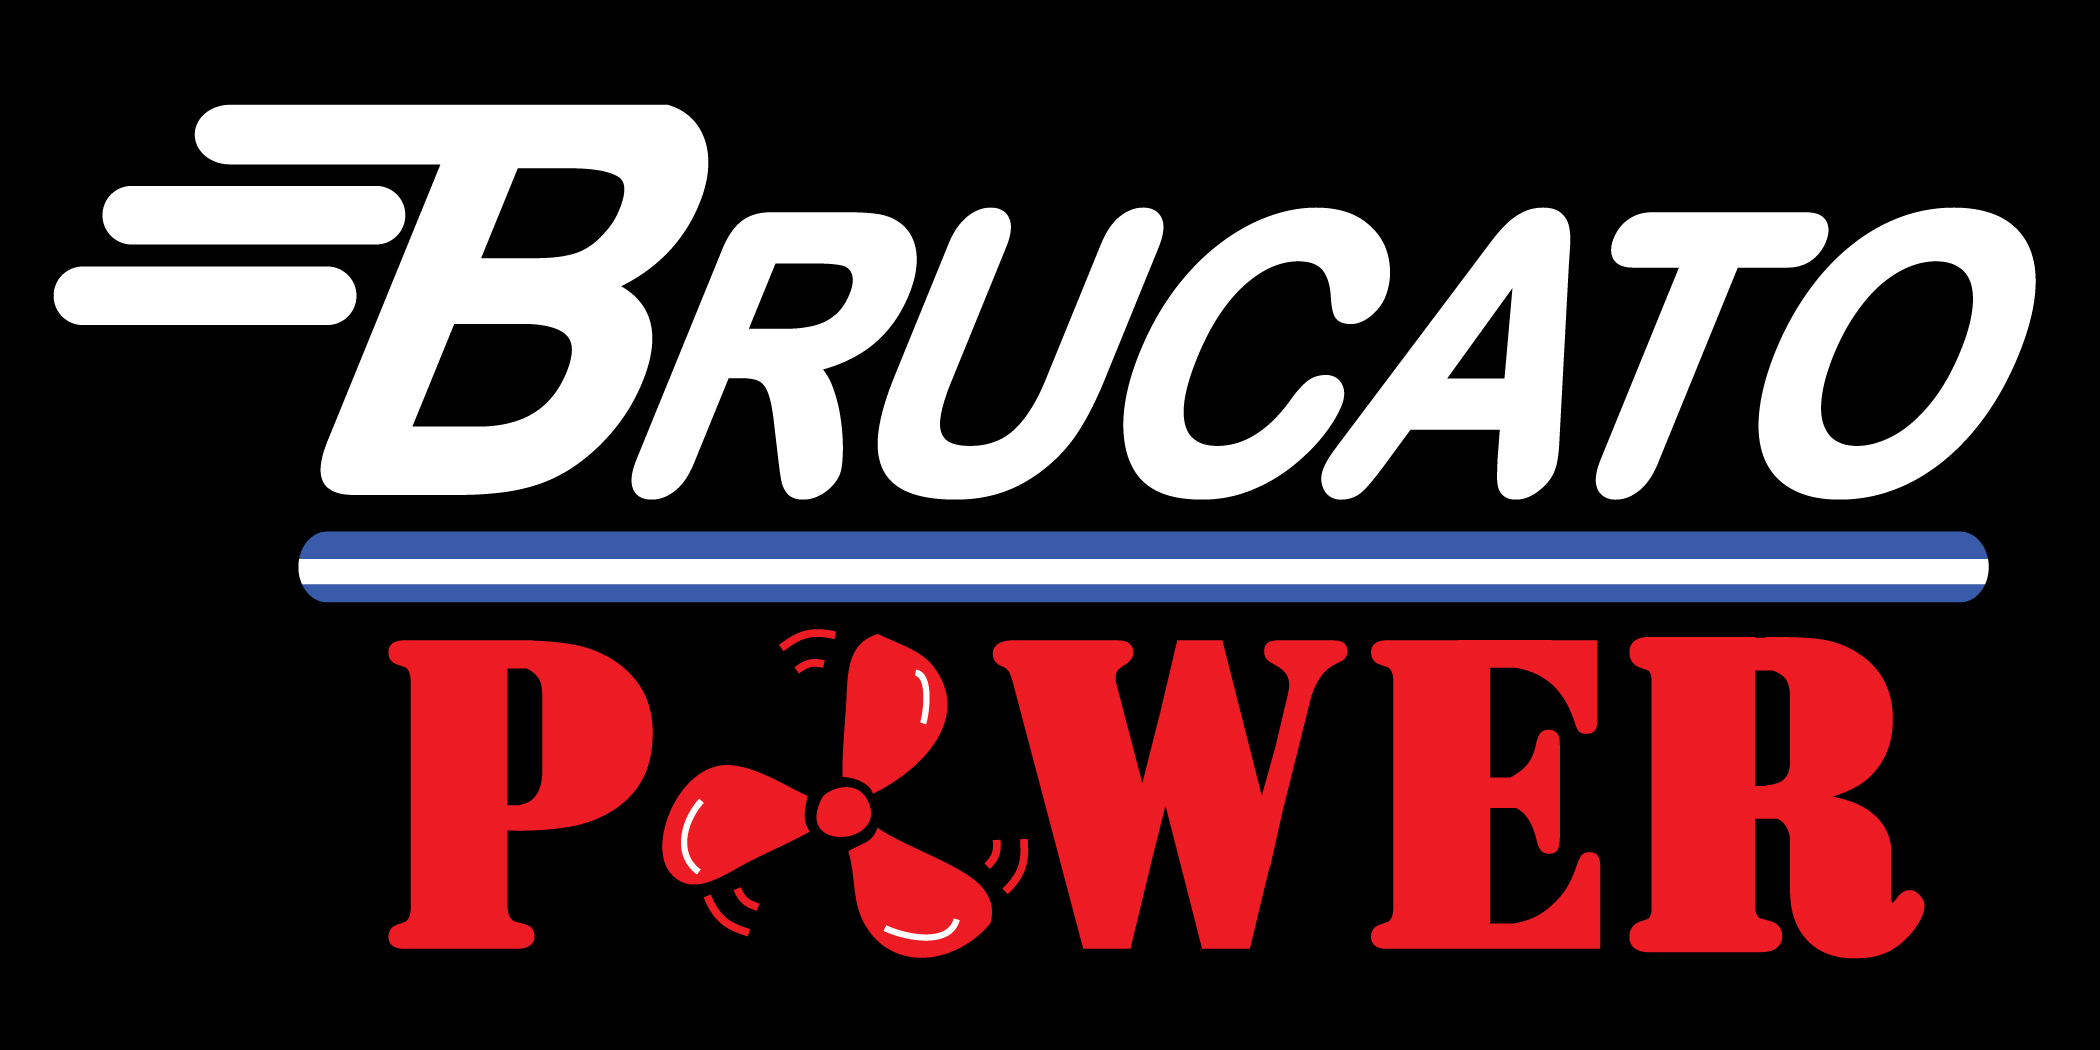 FINALBrucatoPowerLogo_BlackBackground